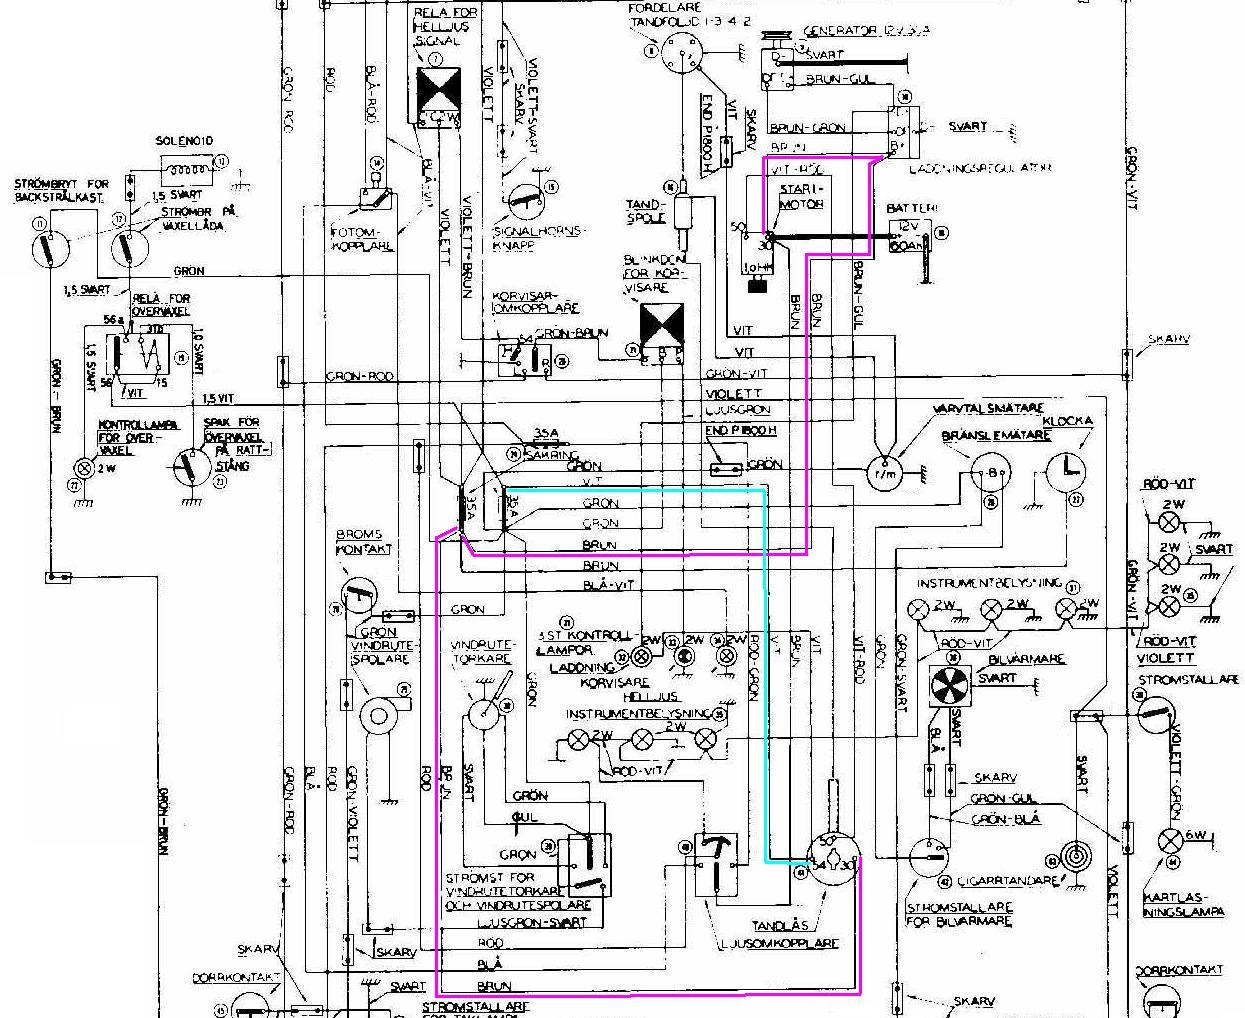 1800 Wiring Diagram marked up 1800 ignition wiring swedish vs british design volvo amazon wiring diagram at edmiracle.co